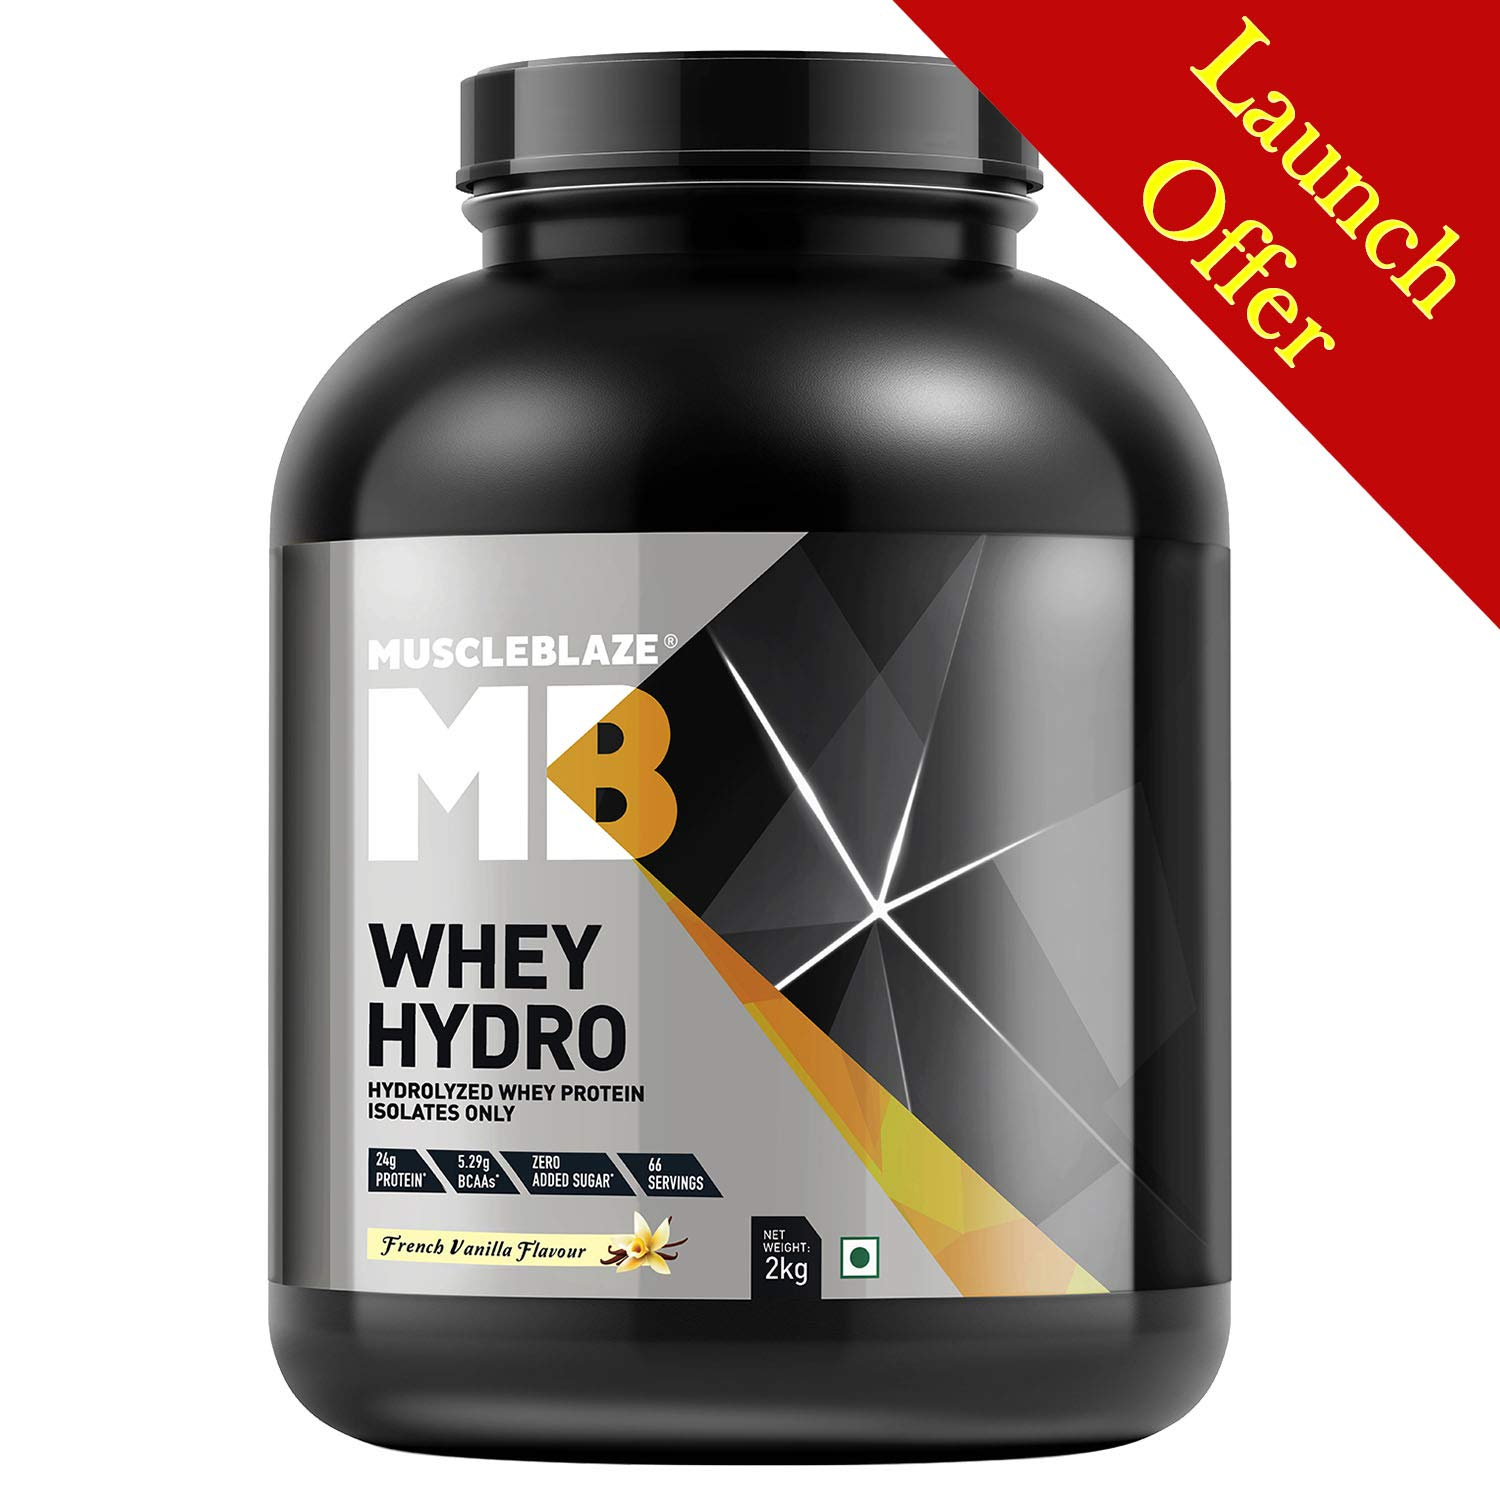 MuscleBlaze Whey Hydro Whey Protein Isolate (2 Kg, French Vanilla)